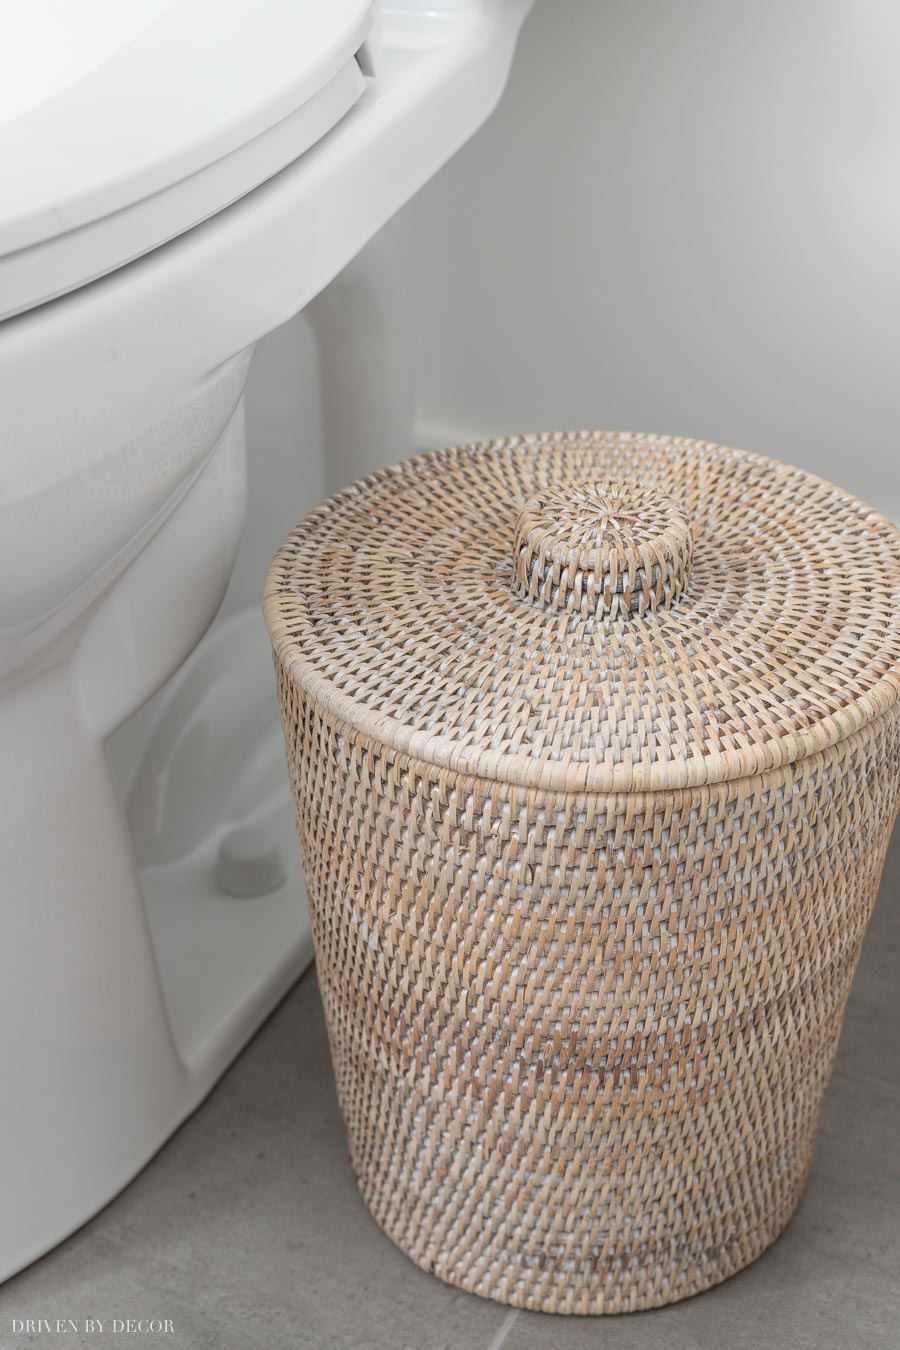 Cute rattan trash can that comes with a plastic liner inside!